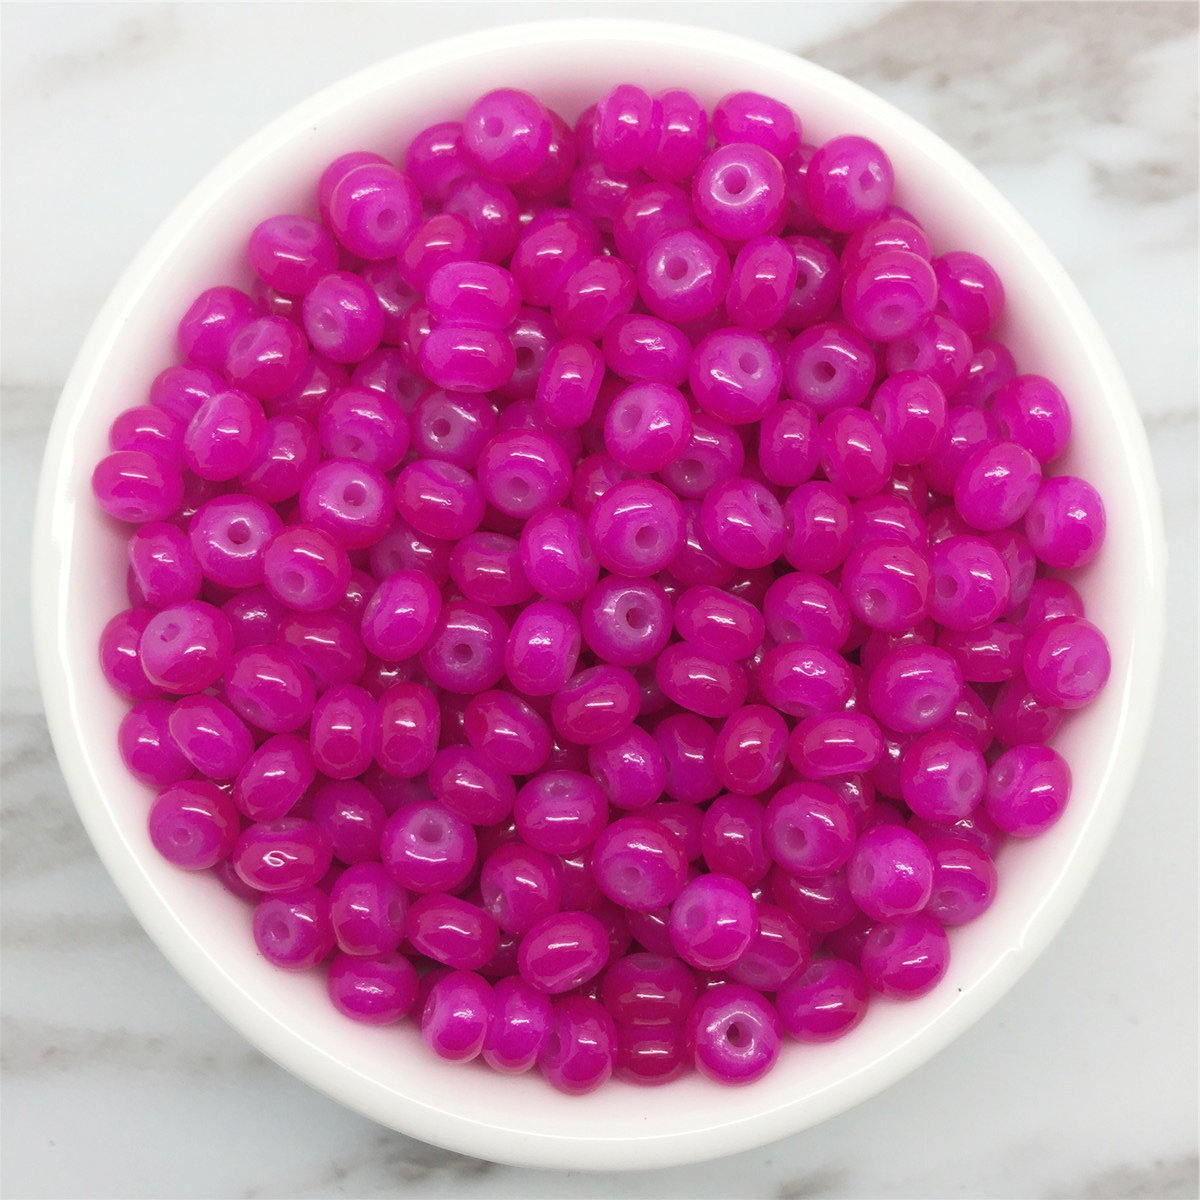 NEW 50PCS 6mm Glass  Pearl Spacer Loose Oblate Beads Jewelry Making Craft 32